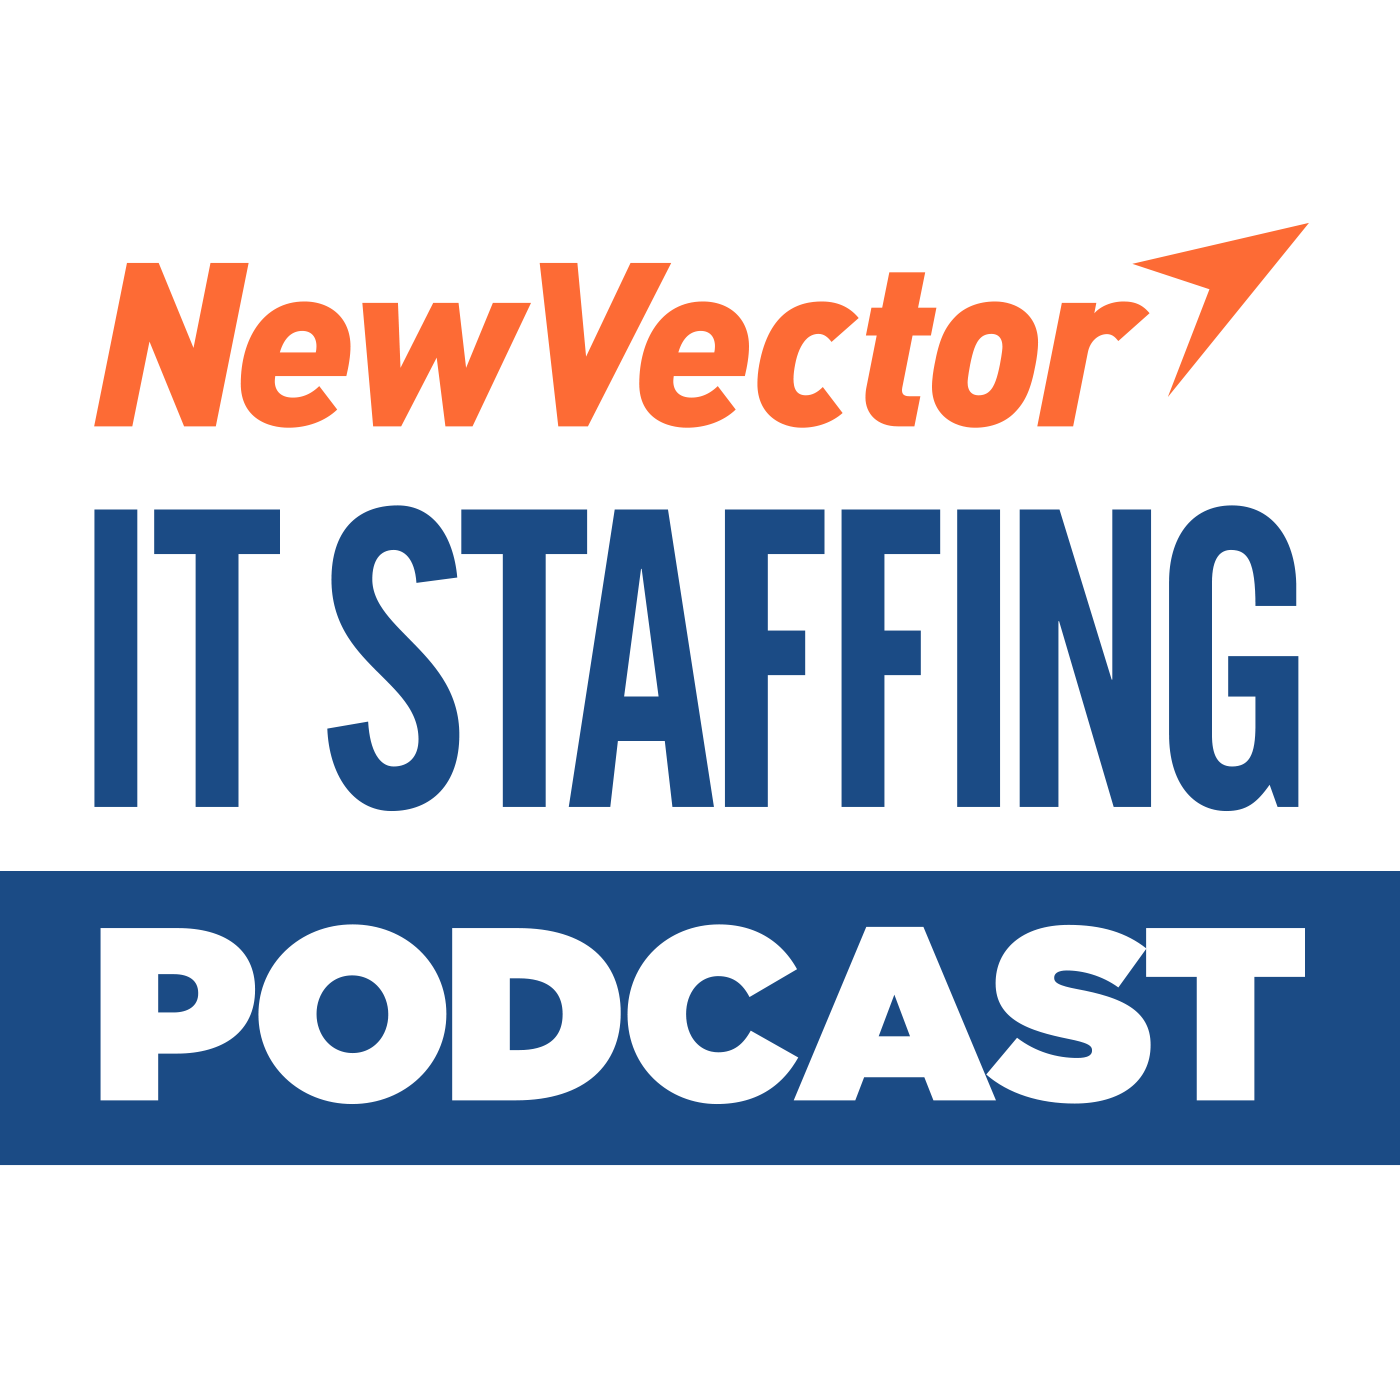 NewVector IT Staffing Industry Podcast show image